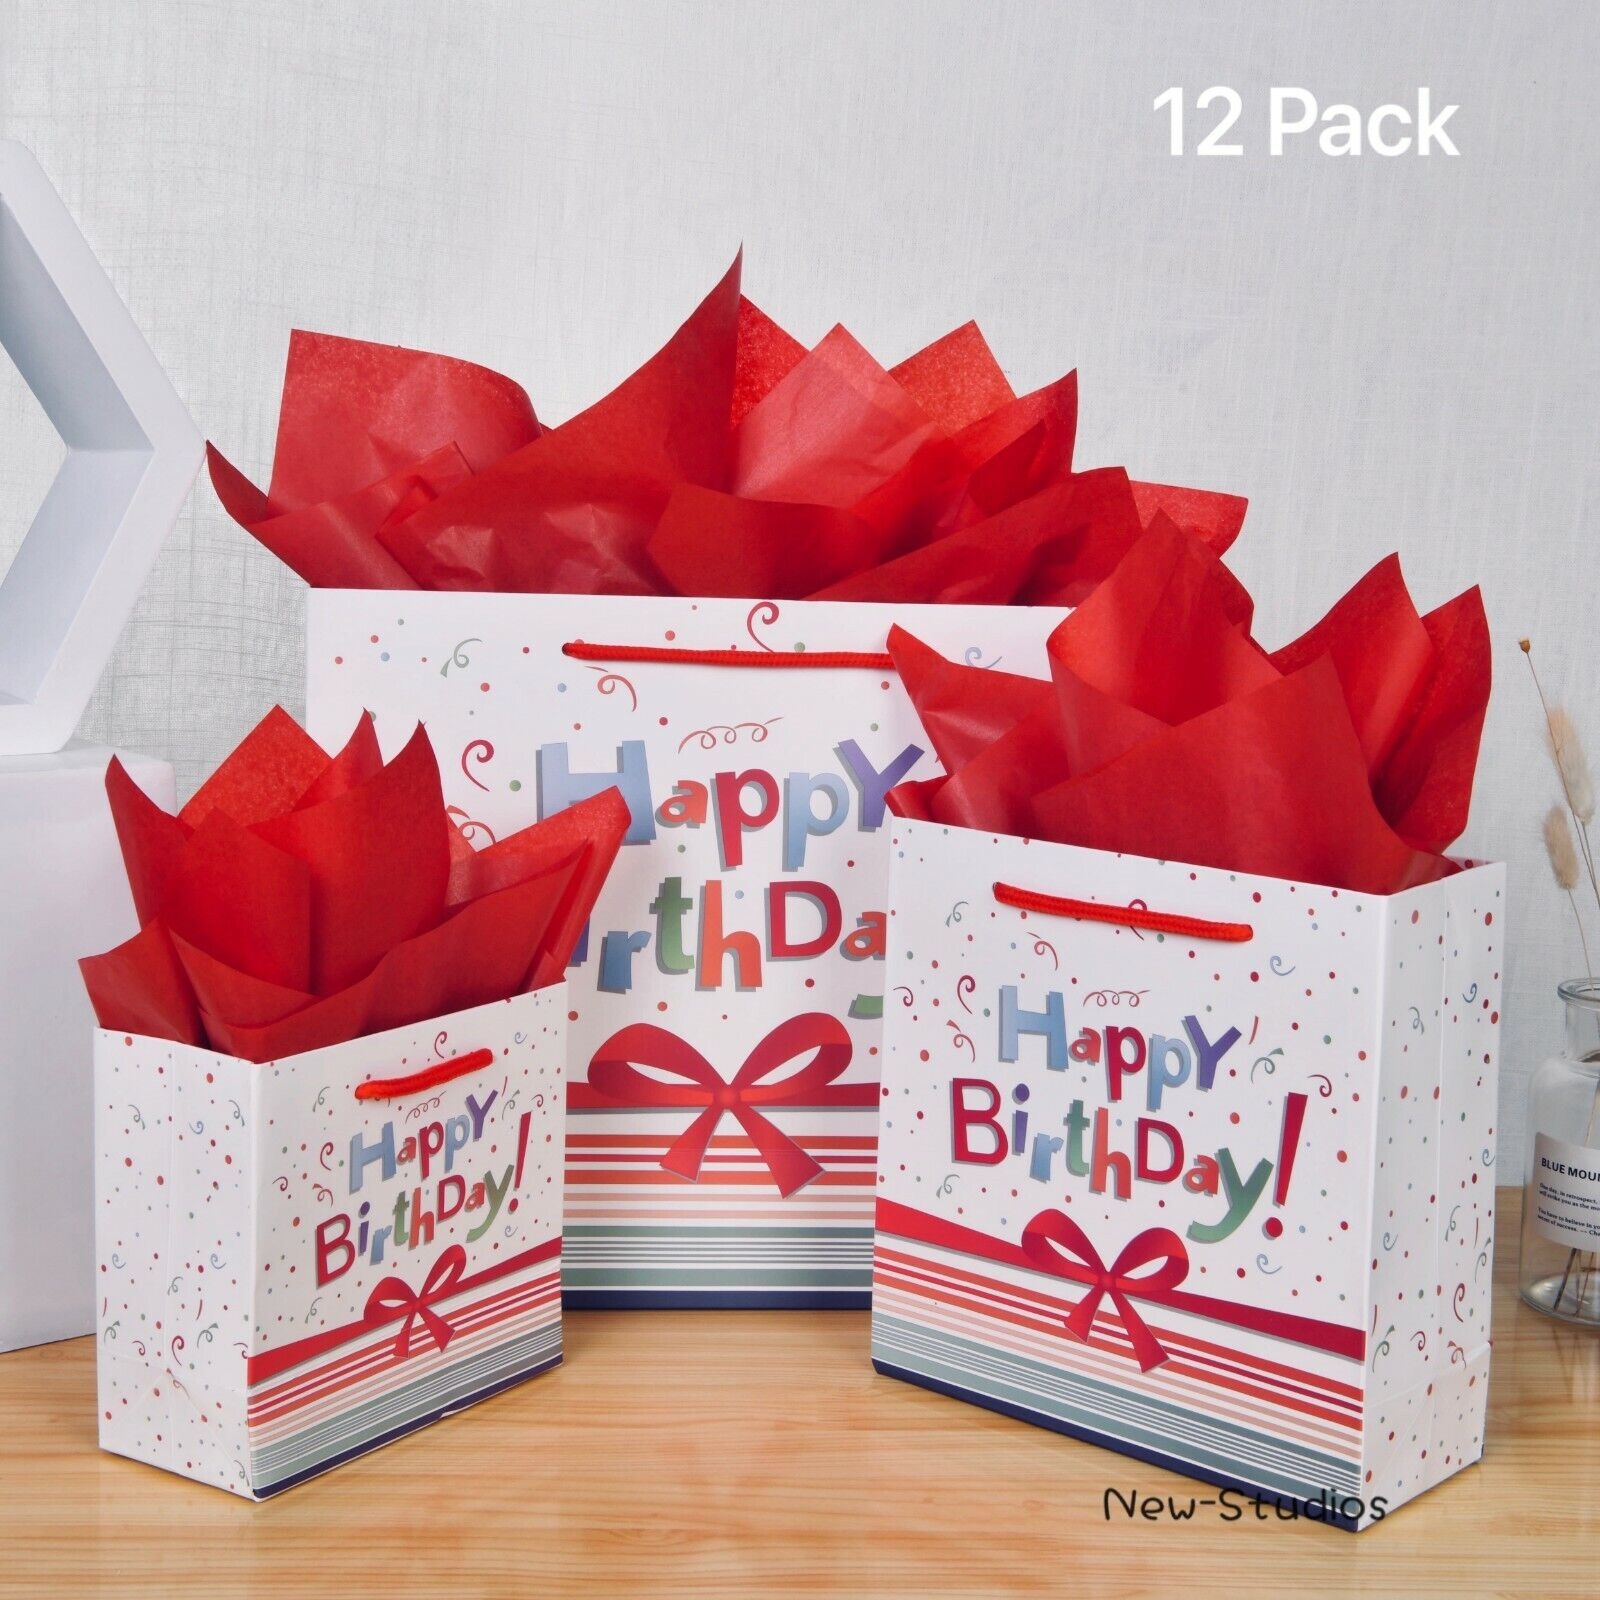 12 Pack Birthday Gift Bags Assortment with Tissue Paper and